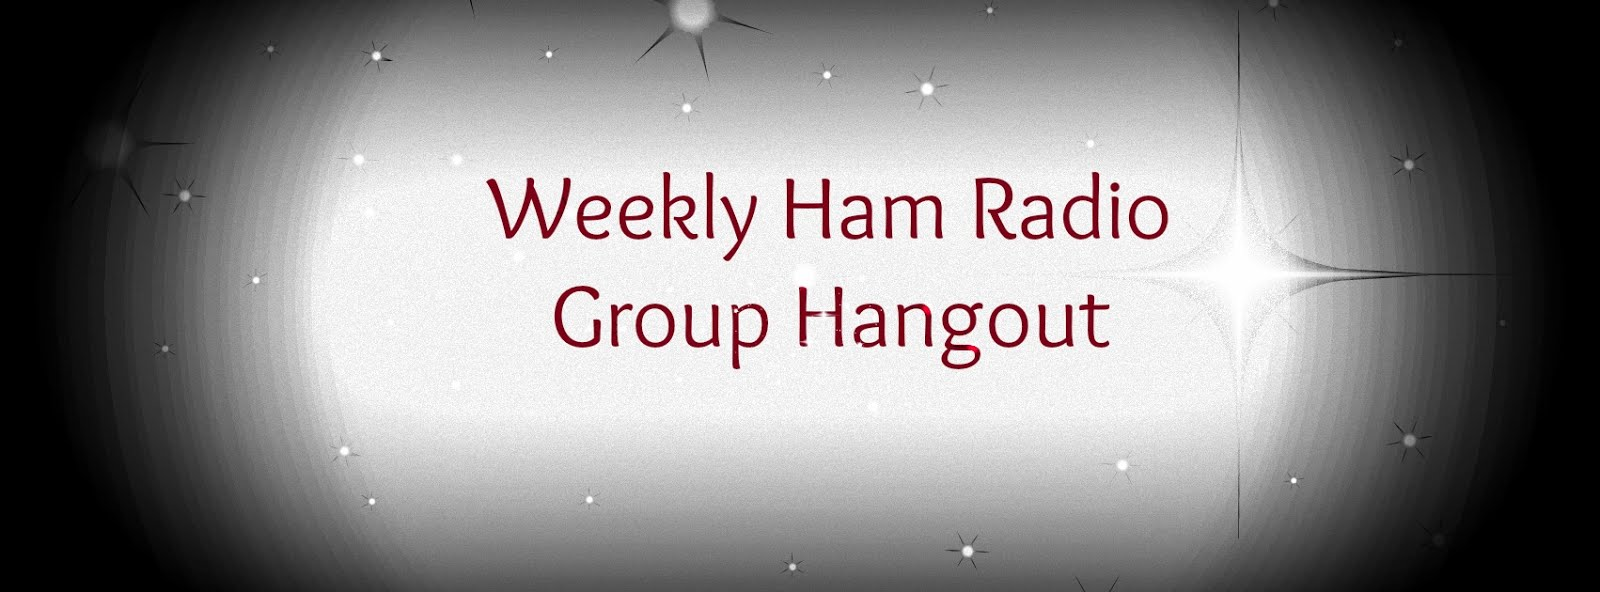 Weekly Ham Radio Hangout (All Welcome)